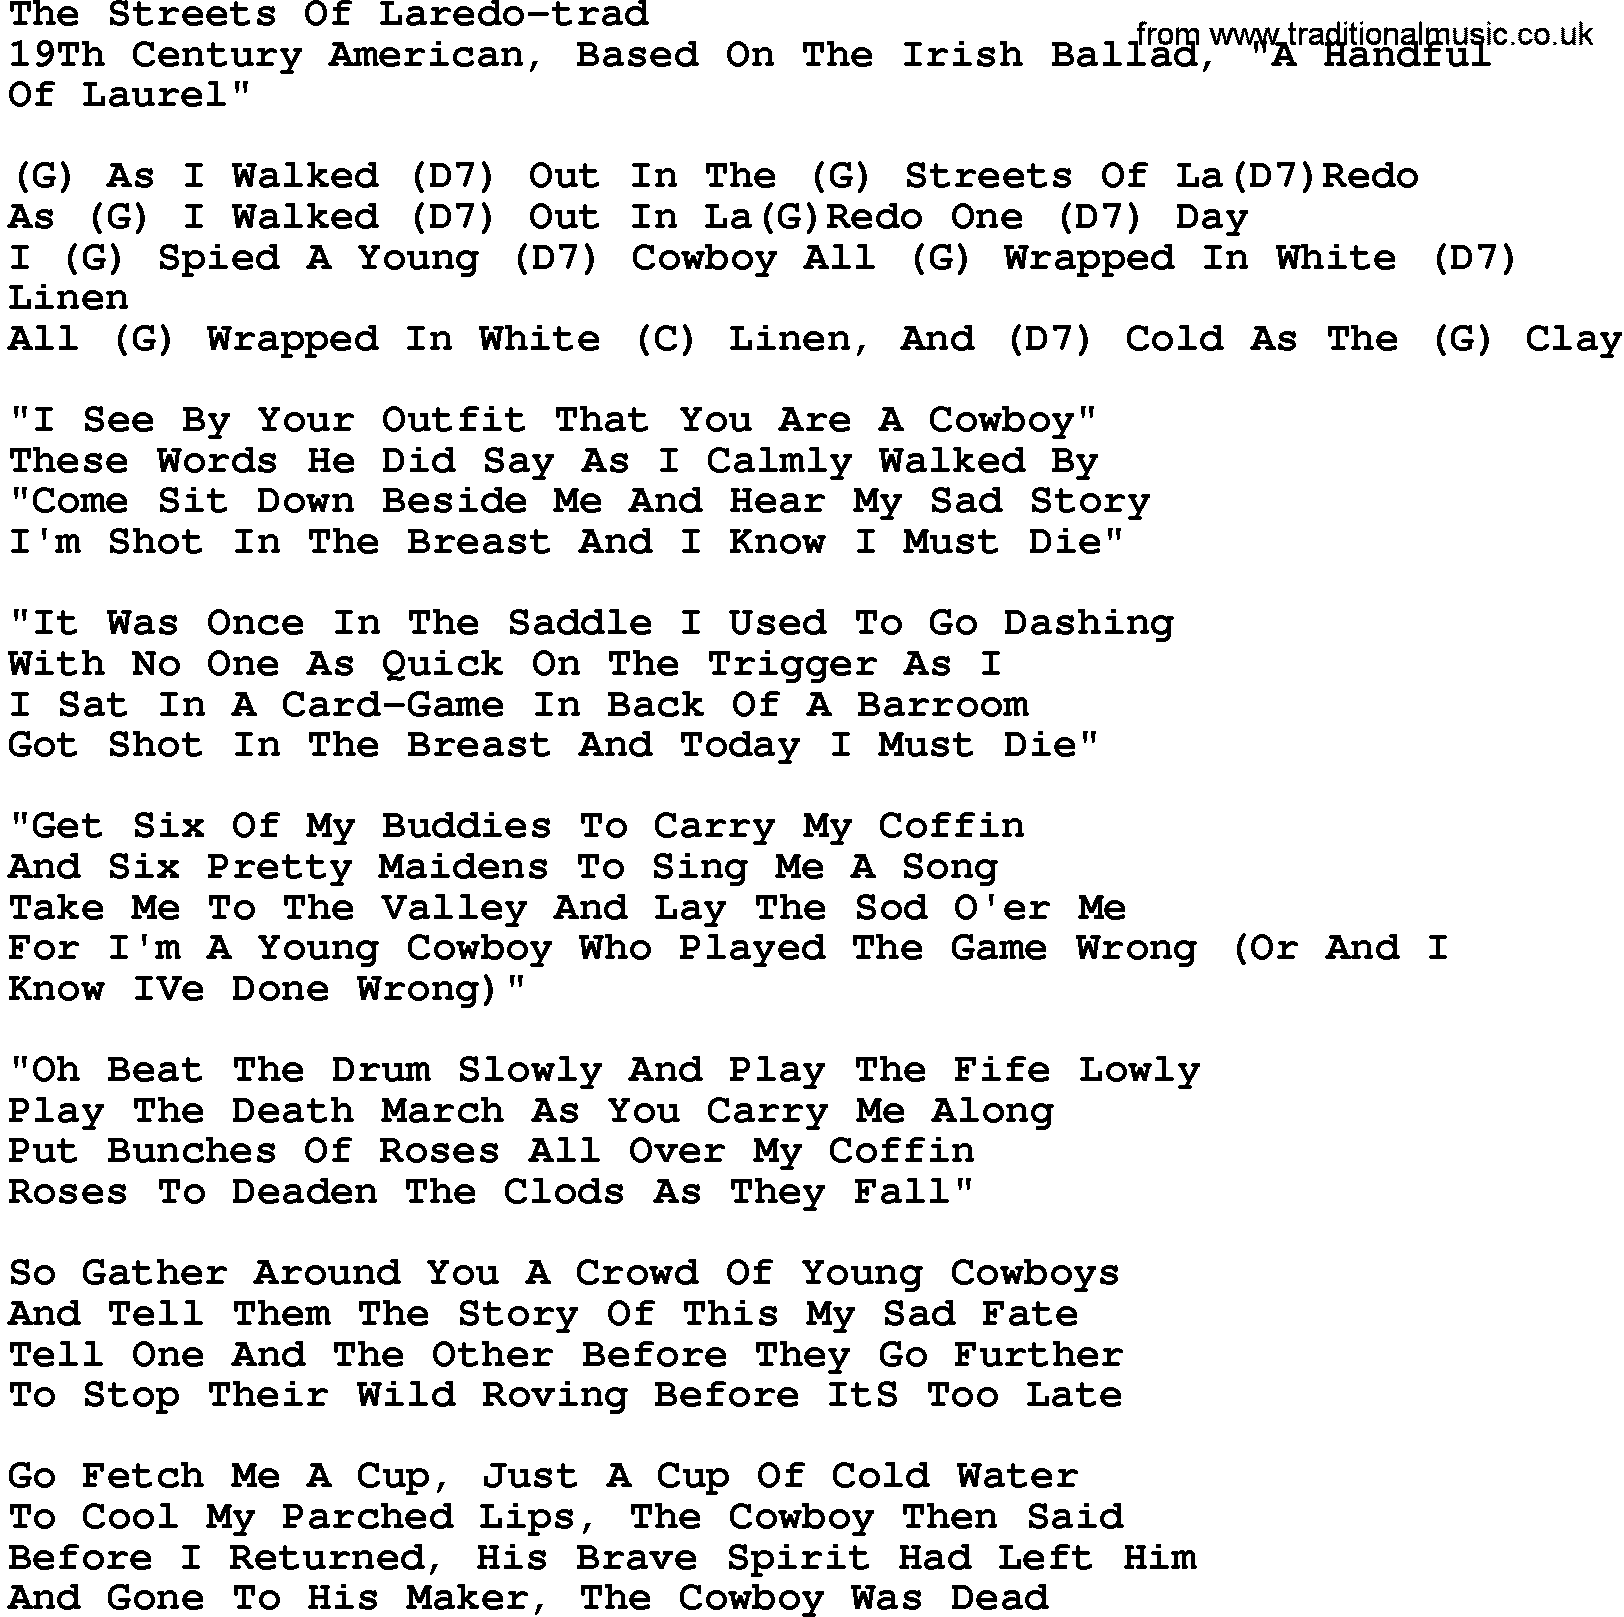 Country MusicThe Streets Of Laredo trad Lyrics and Chords